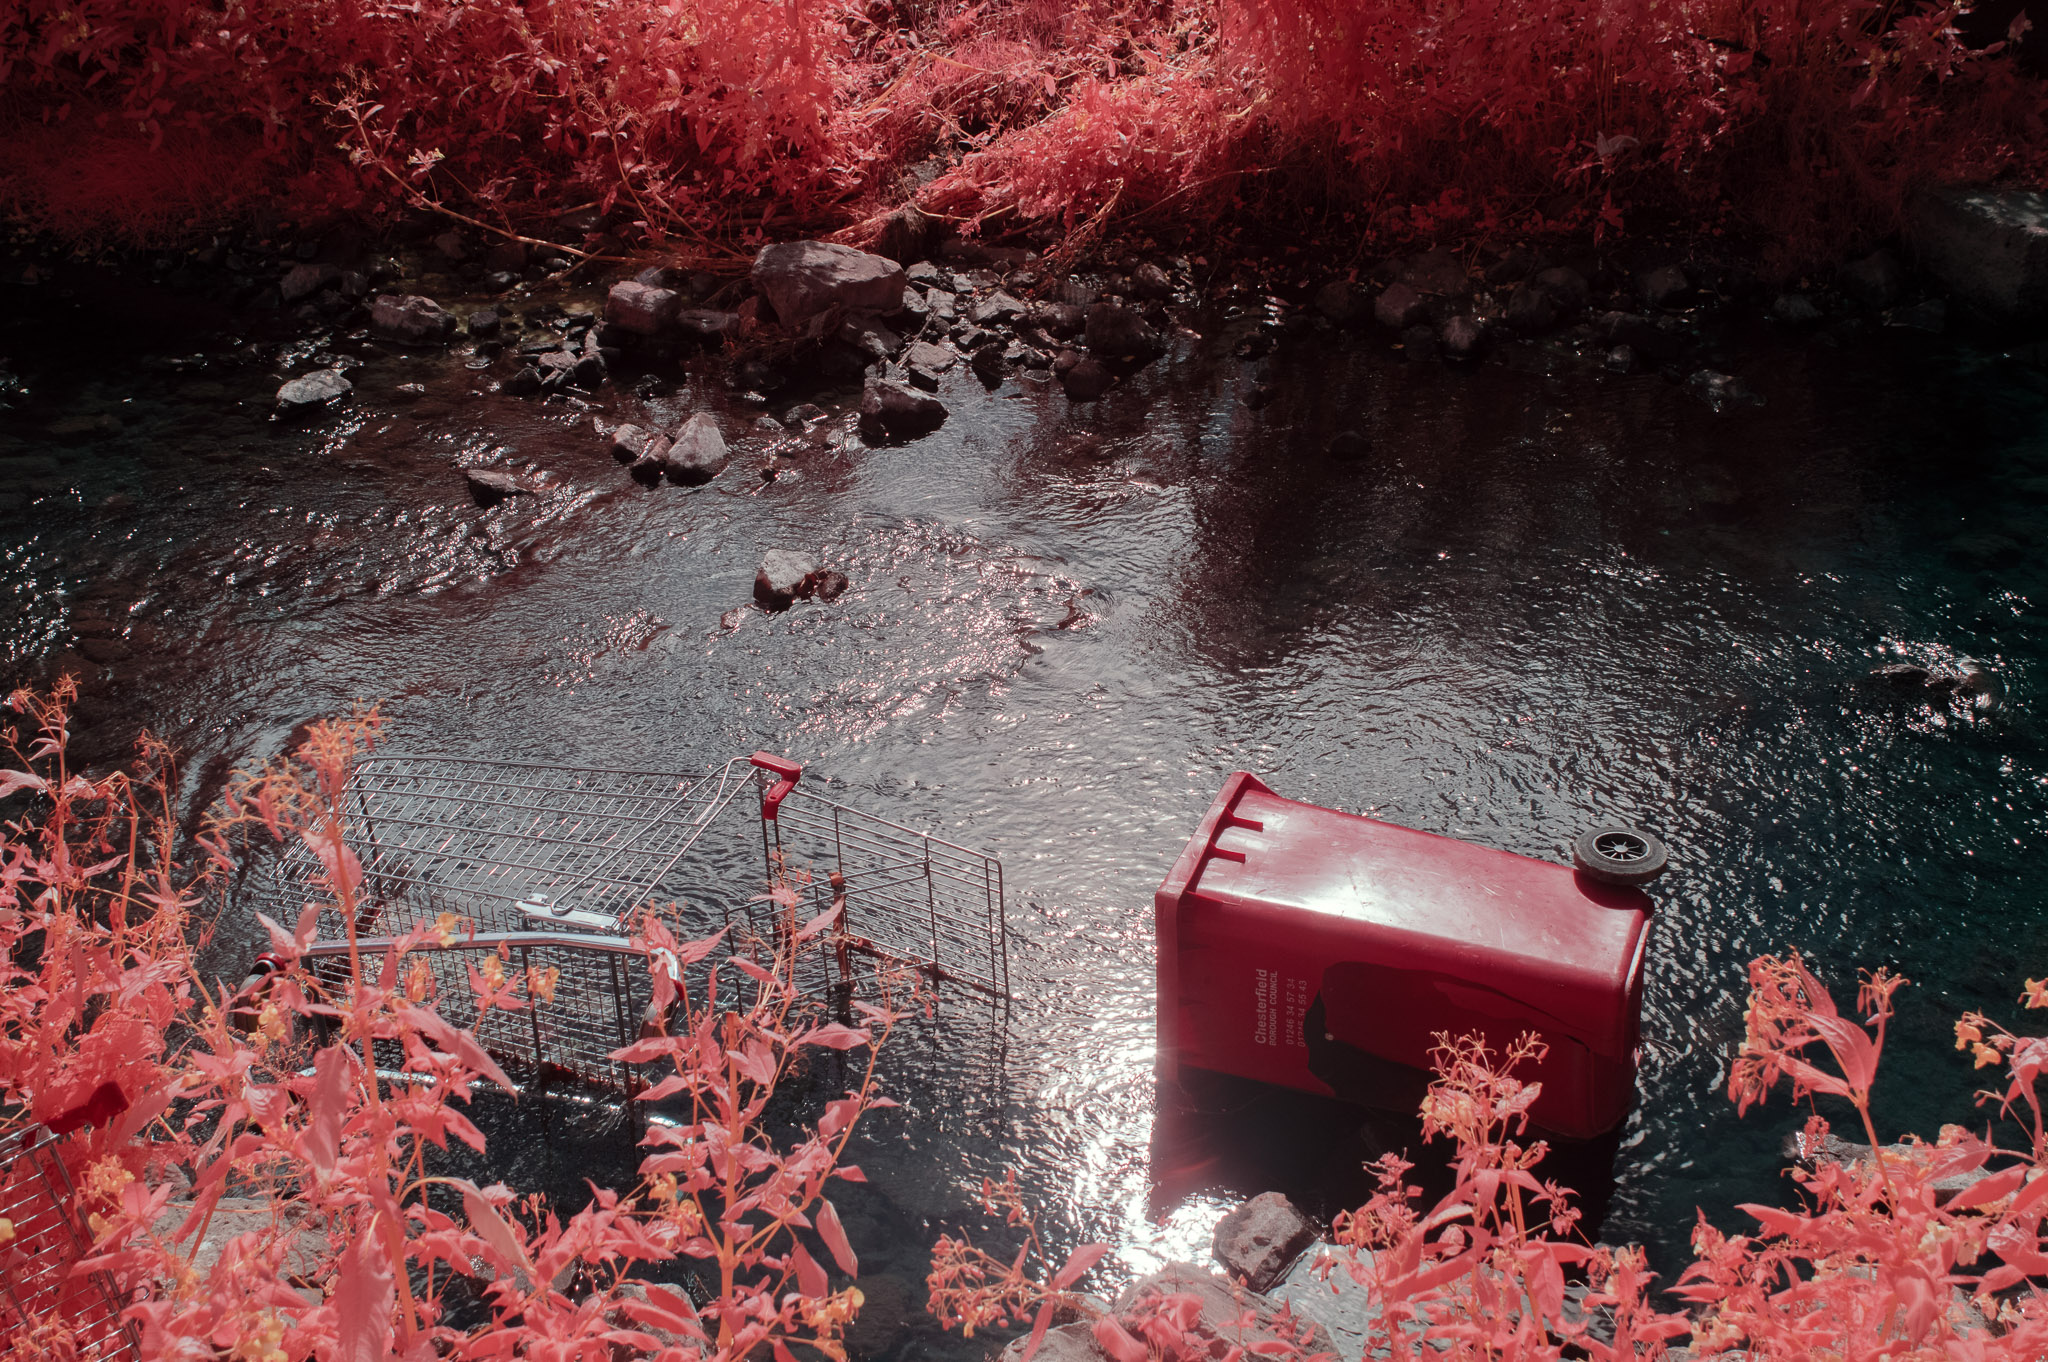 Kodak EIR Colour Infrared, Edgelands, Wasteland, Out of sight, Bin, River ©Jonny Sutton